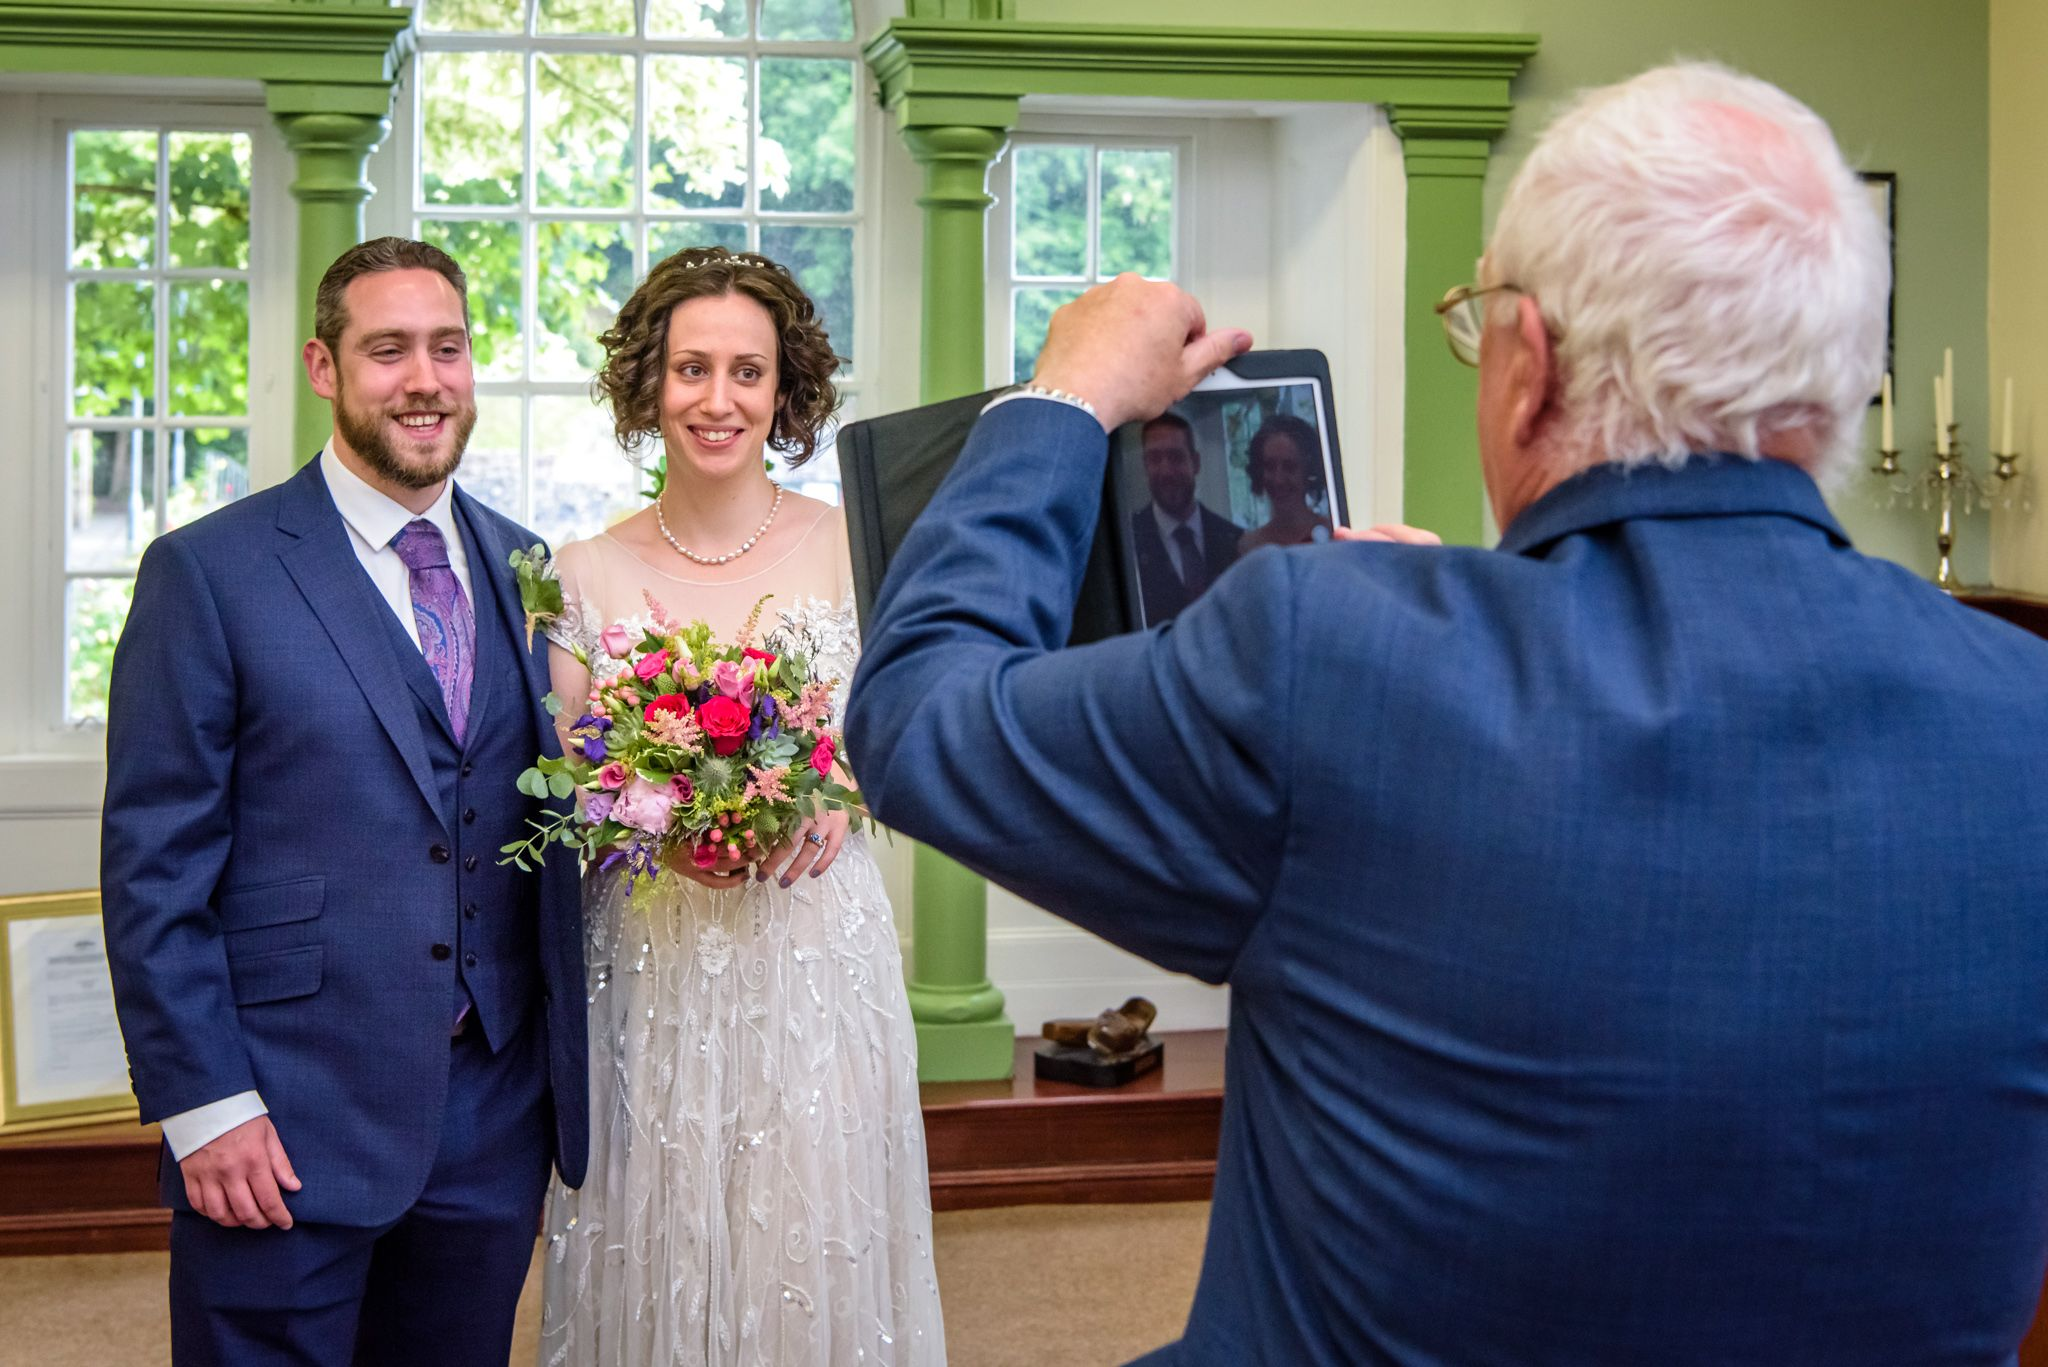 Father of bride taking iPad picture after wedding ceremony